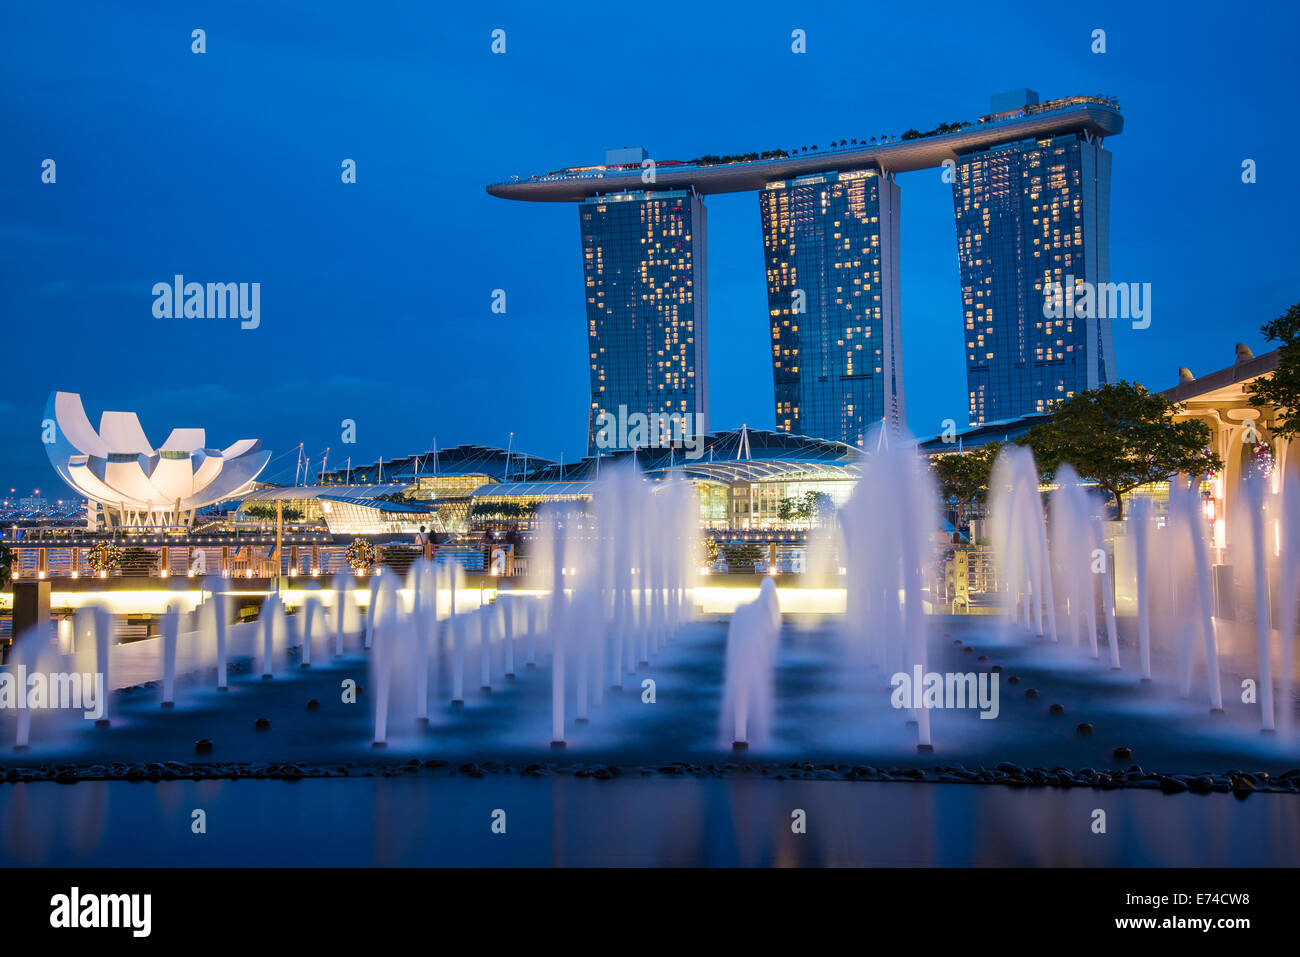 Marina Bay Sands Singapore in Blue Hour - Stock Image